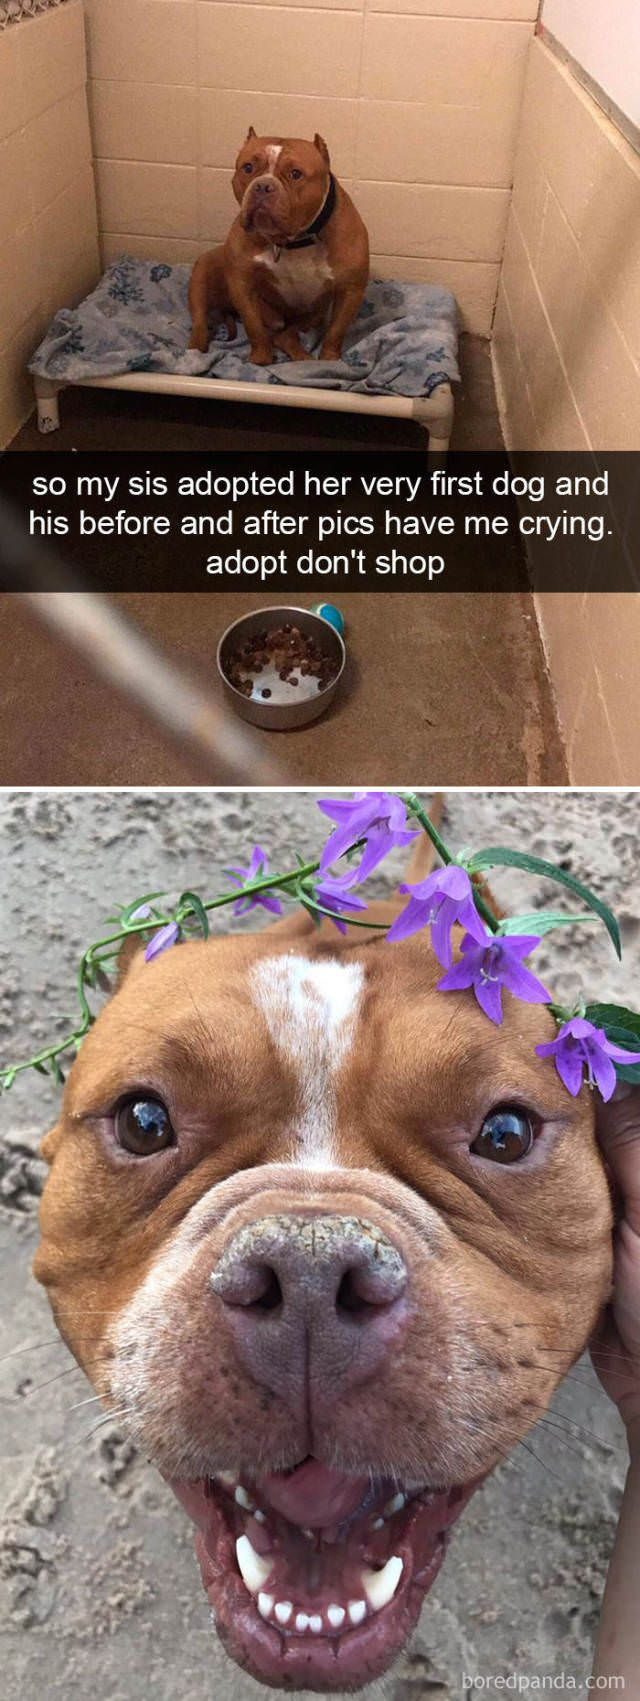 42 Funny Dog Memes Which Will Make You Fall In Love With Them Ladnow Cute Animals Cute Baby Animals Cute Dogs